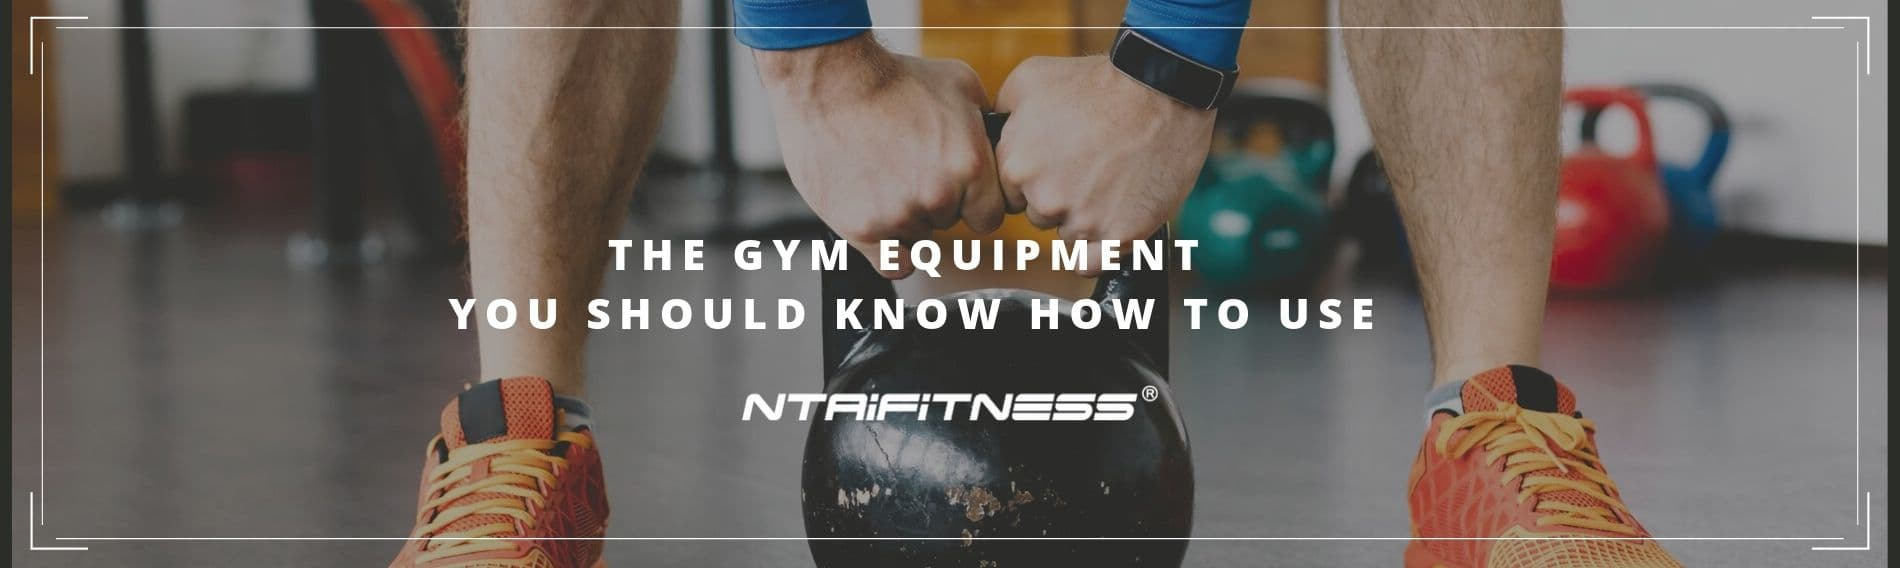 The Gym Equipment, You Should Know How to Use